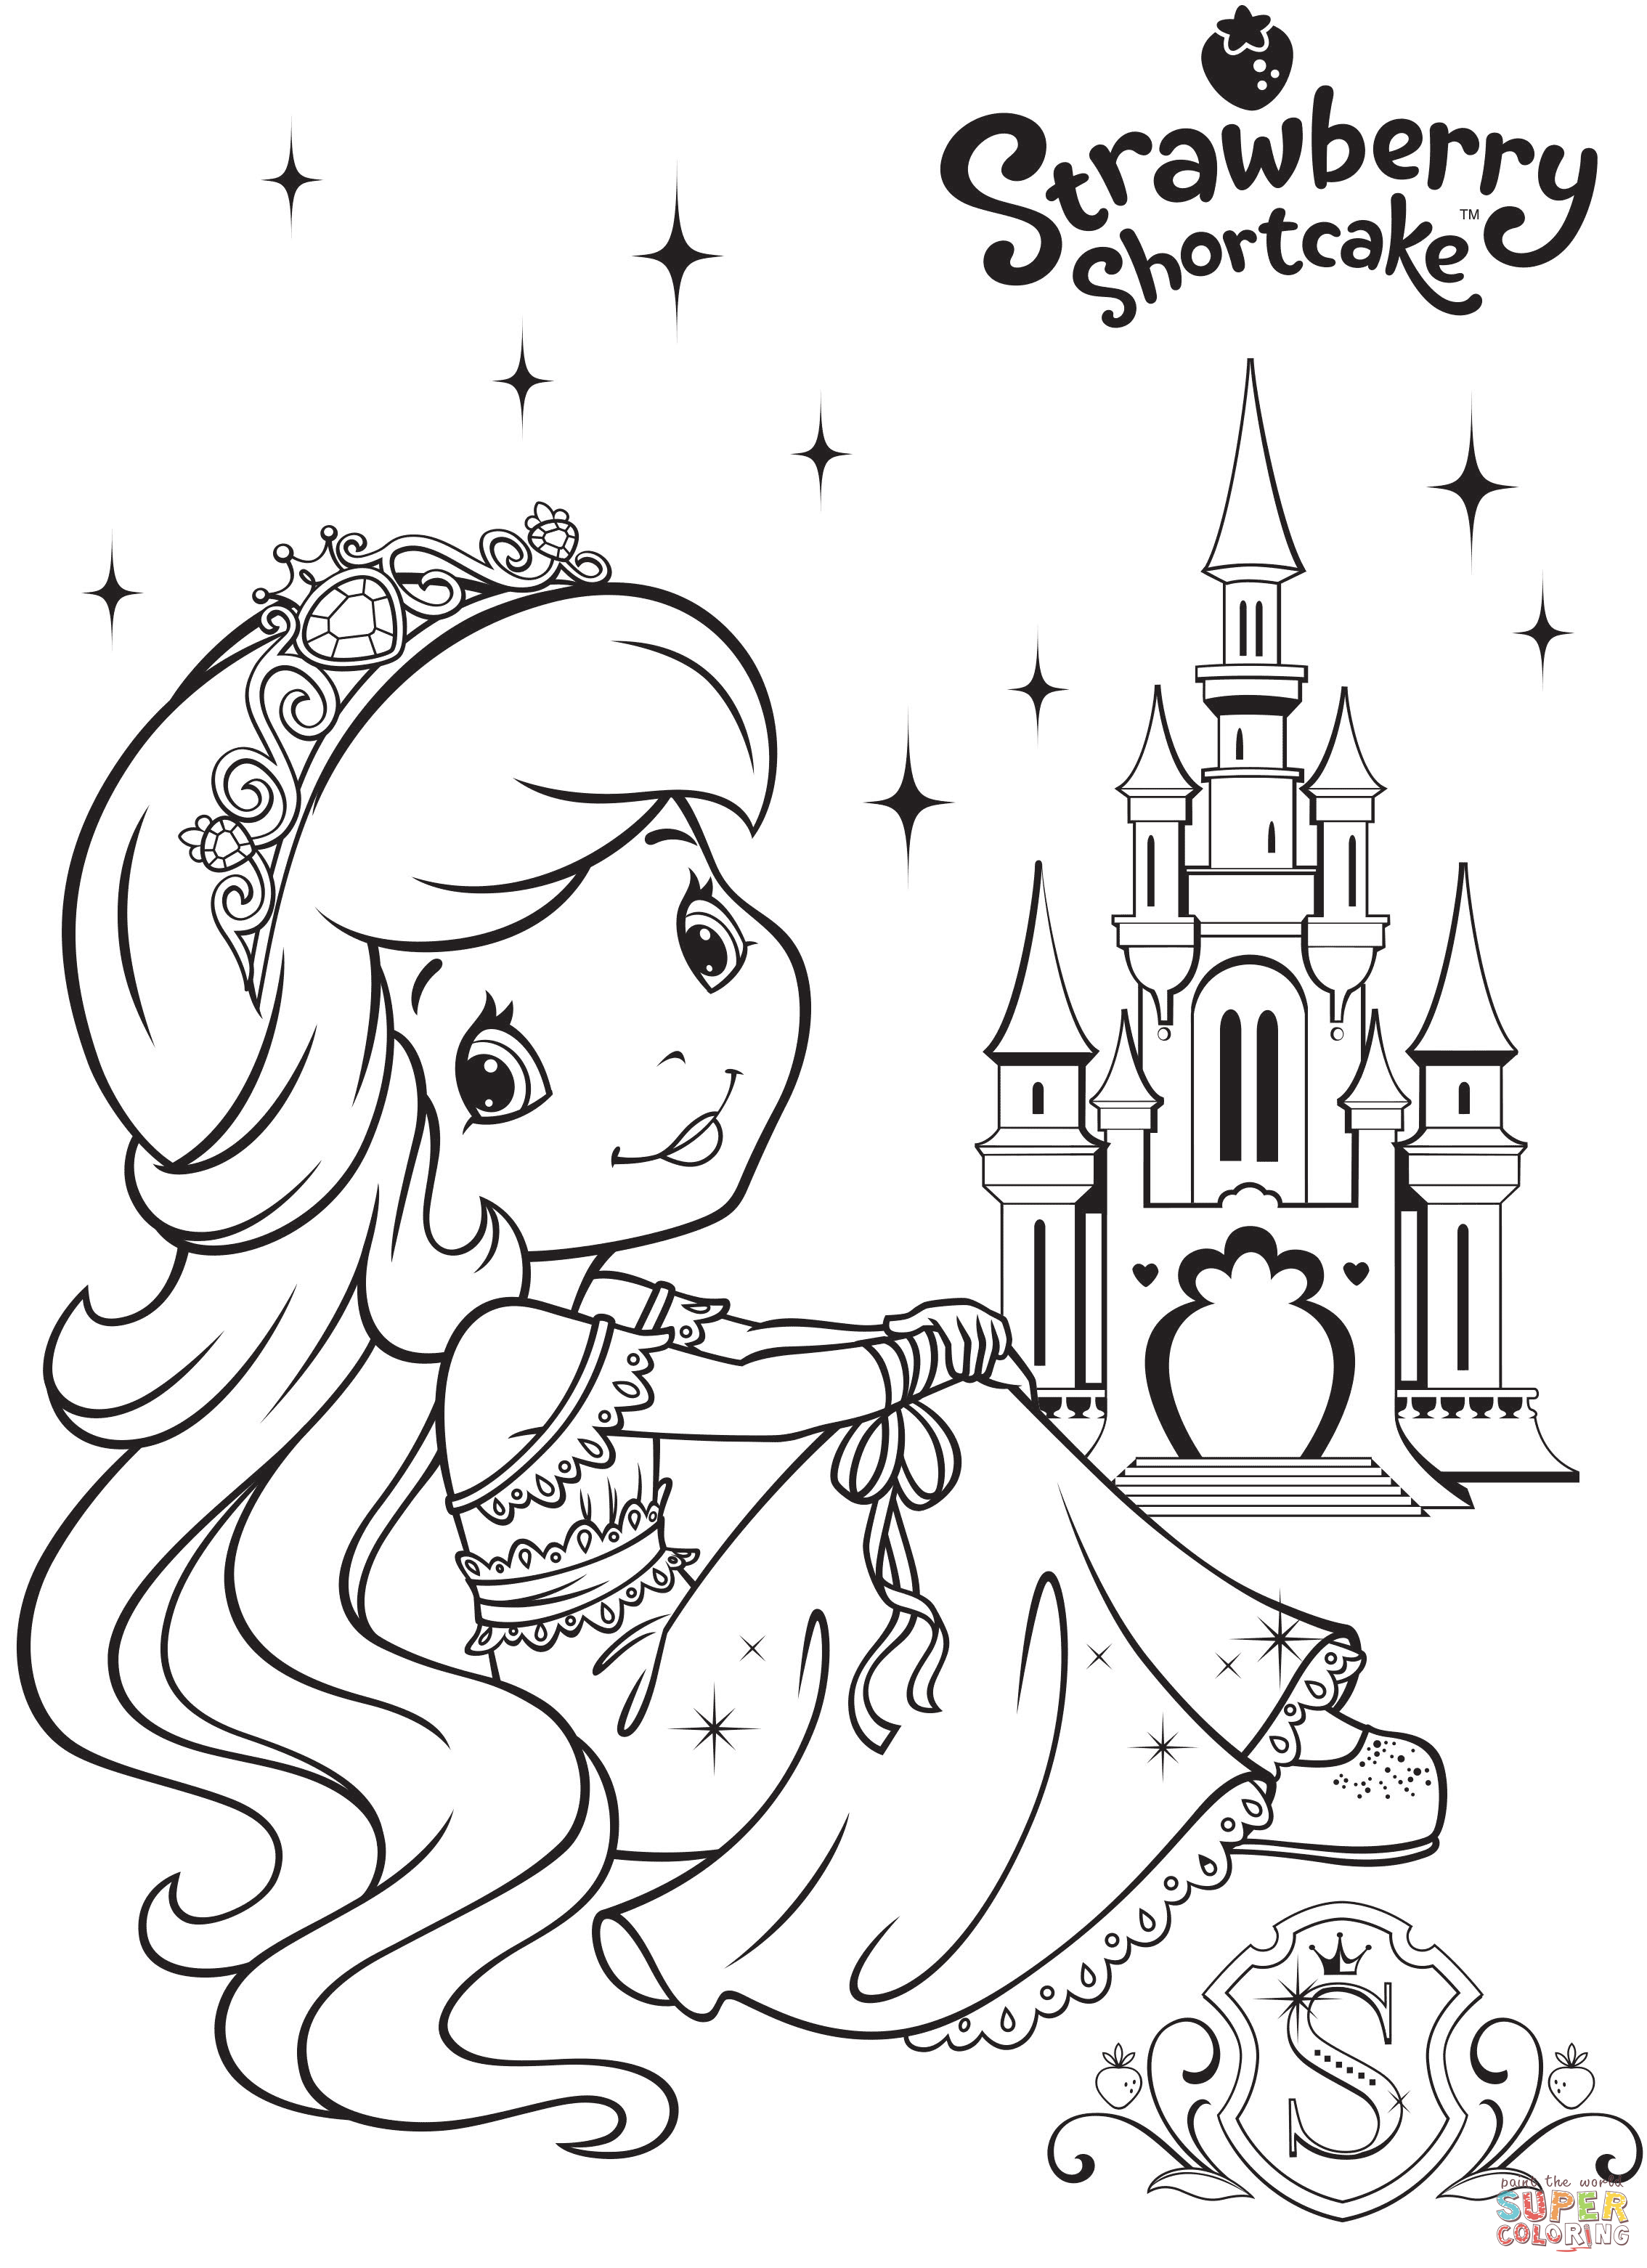 Strawberry Shortcake And Strawberry Castle Coloring Page